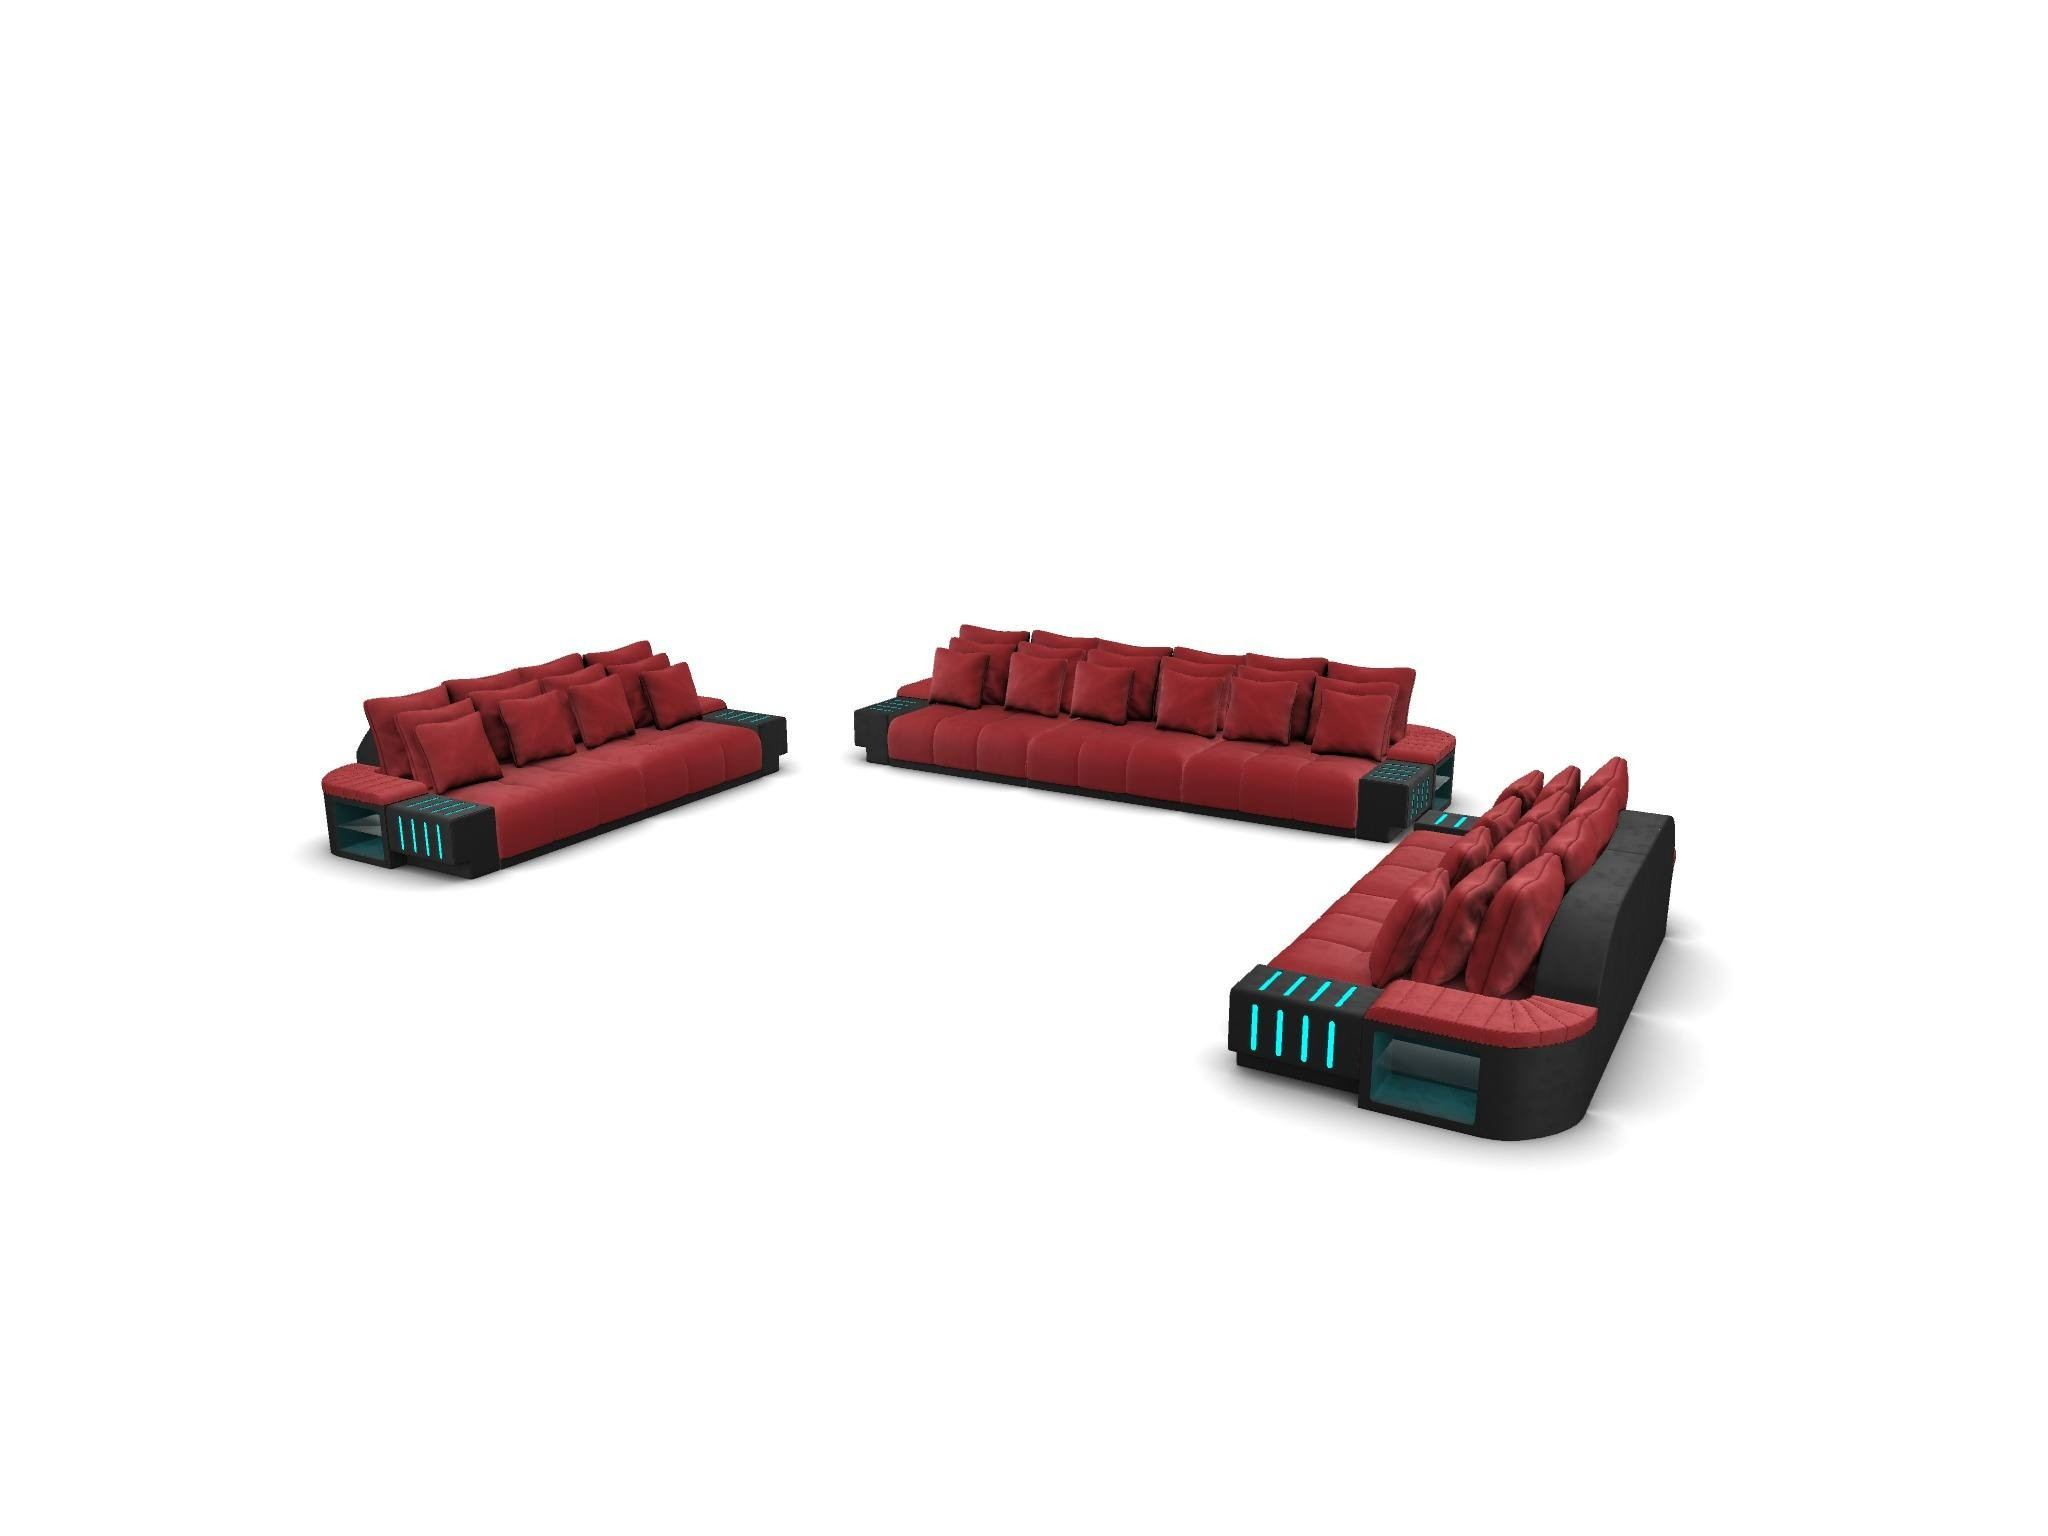 Couch Set Austin 3-2-1 with decorative pillows - red-black